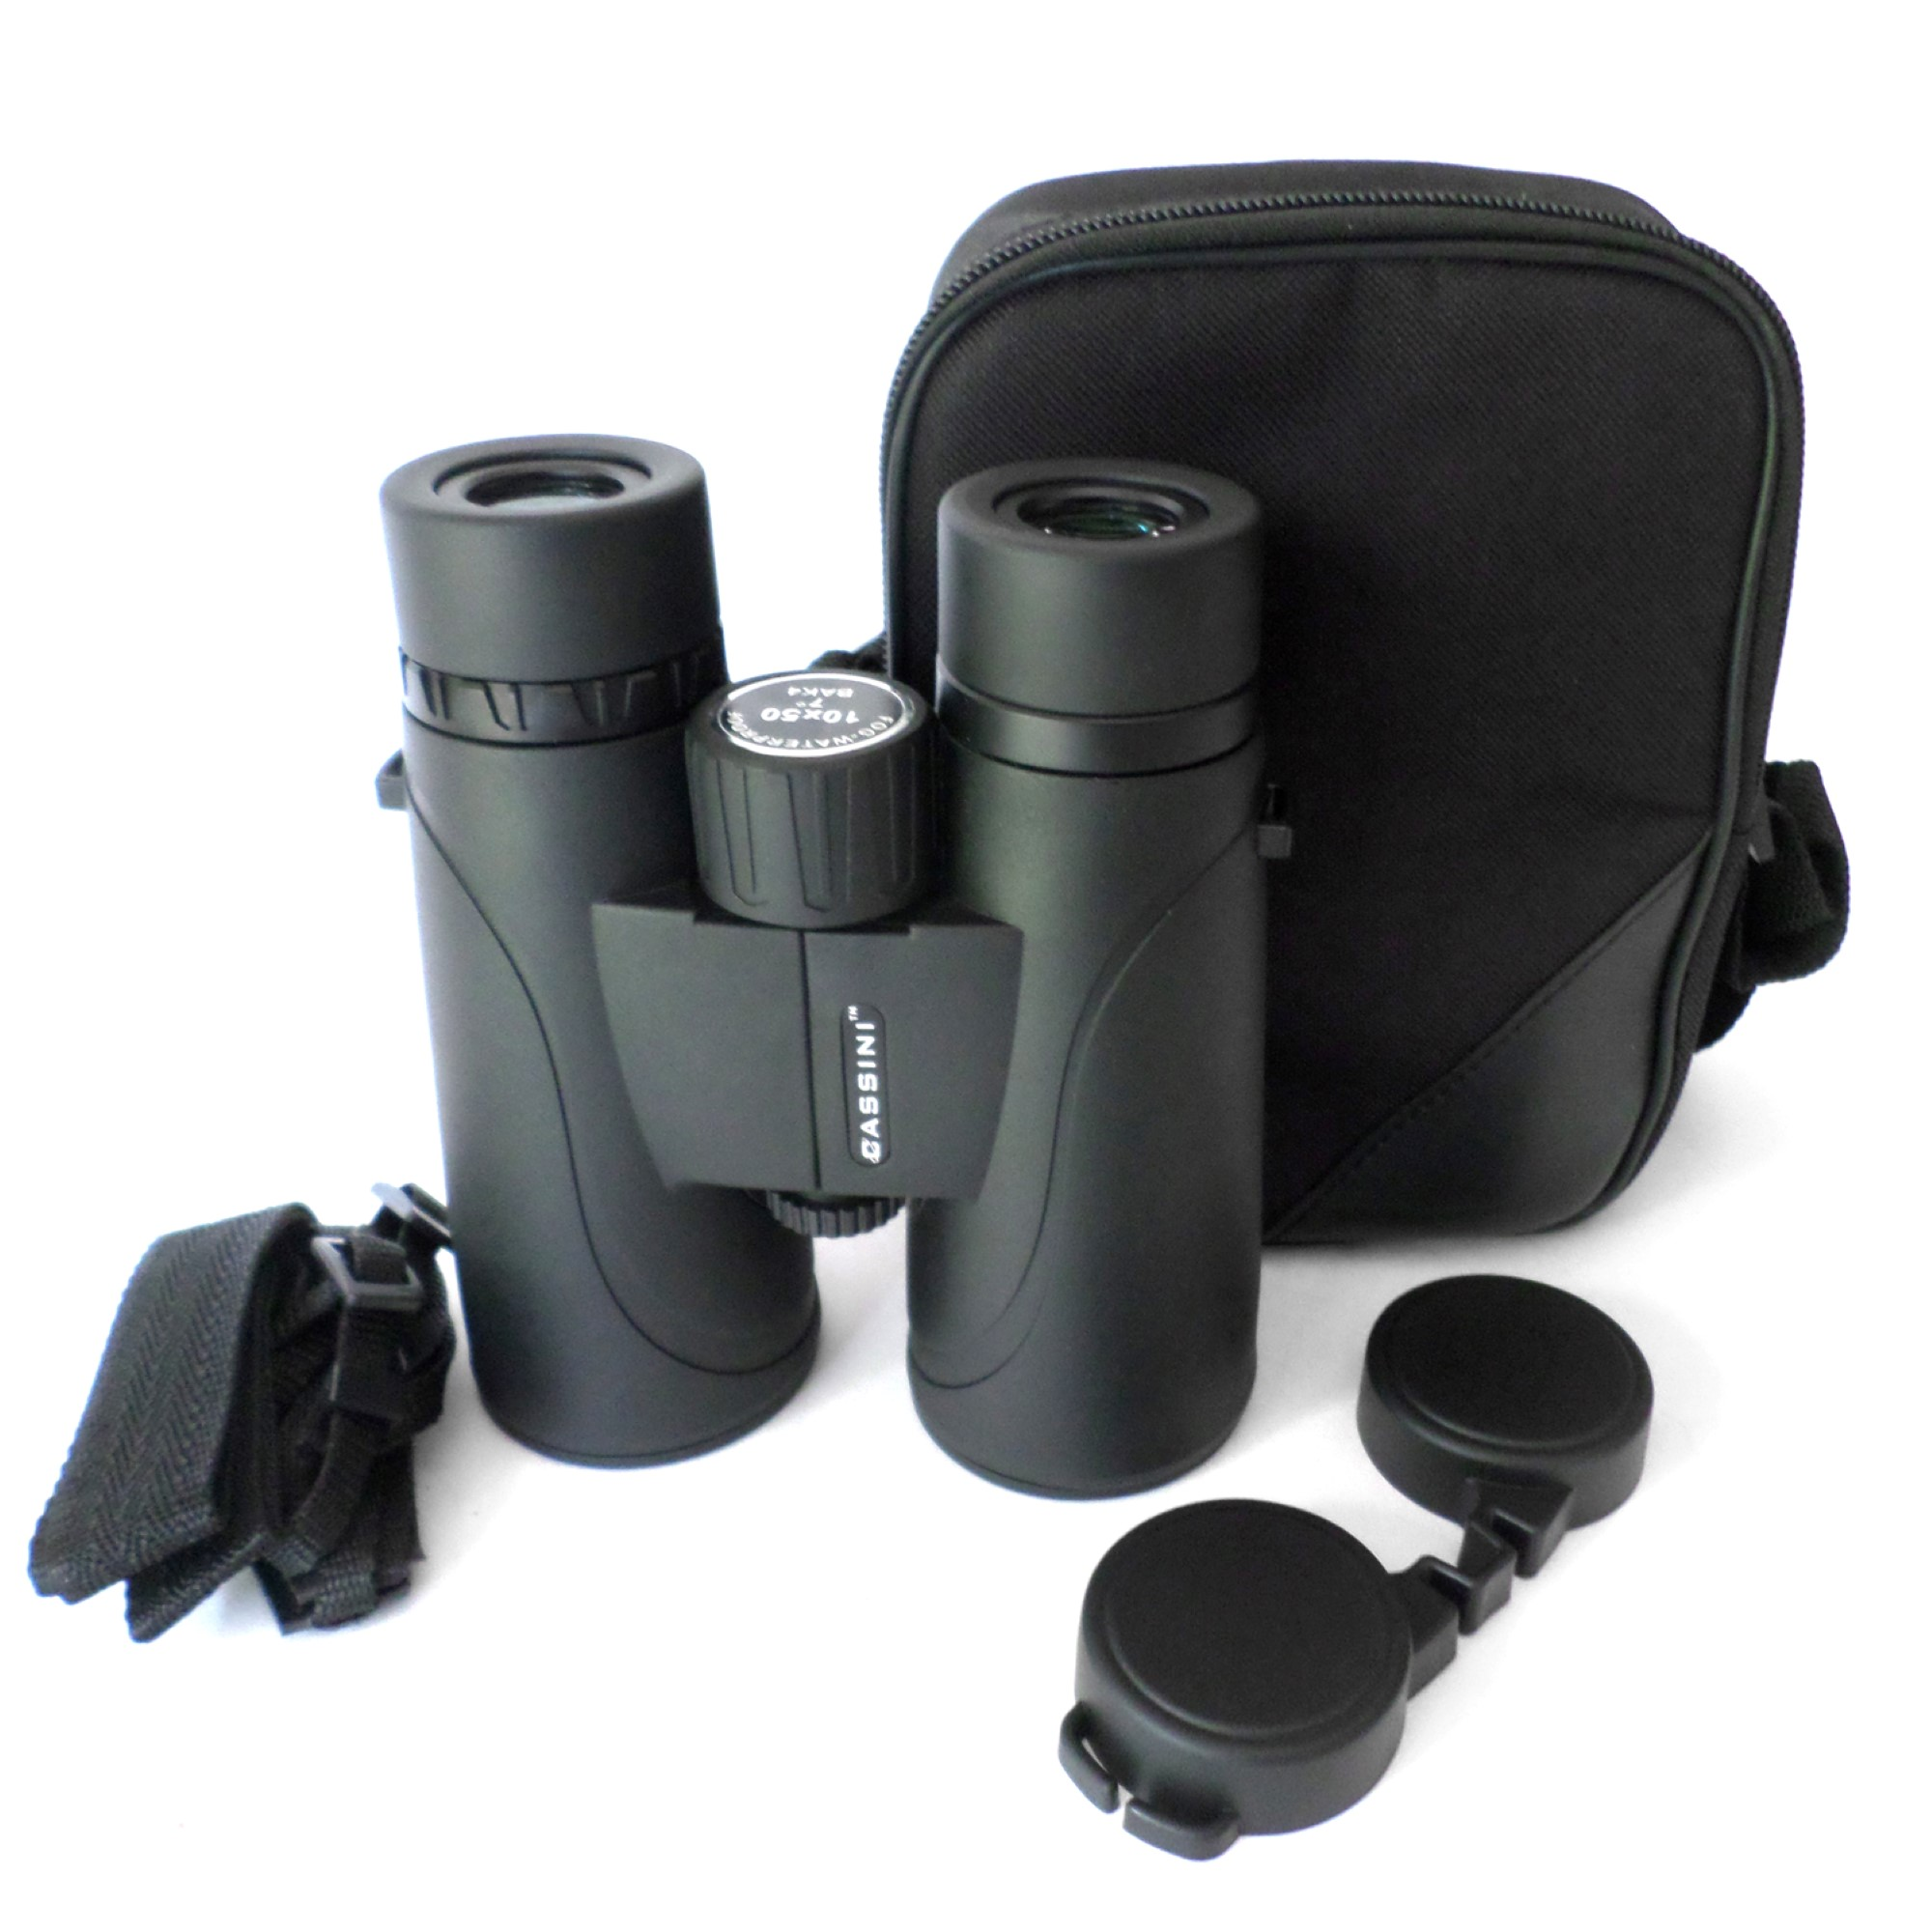 Cassini 10 x 50mm Nitrogen Purged Waterproof & Fogproof Compact Binocular with BAK4 Prisms, Twist Up Eyecups , Shoulder Case and Tripod Port